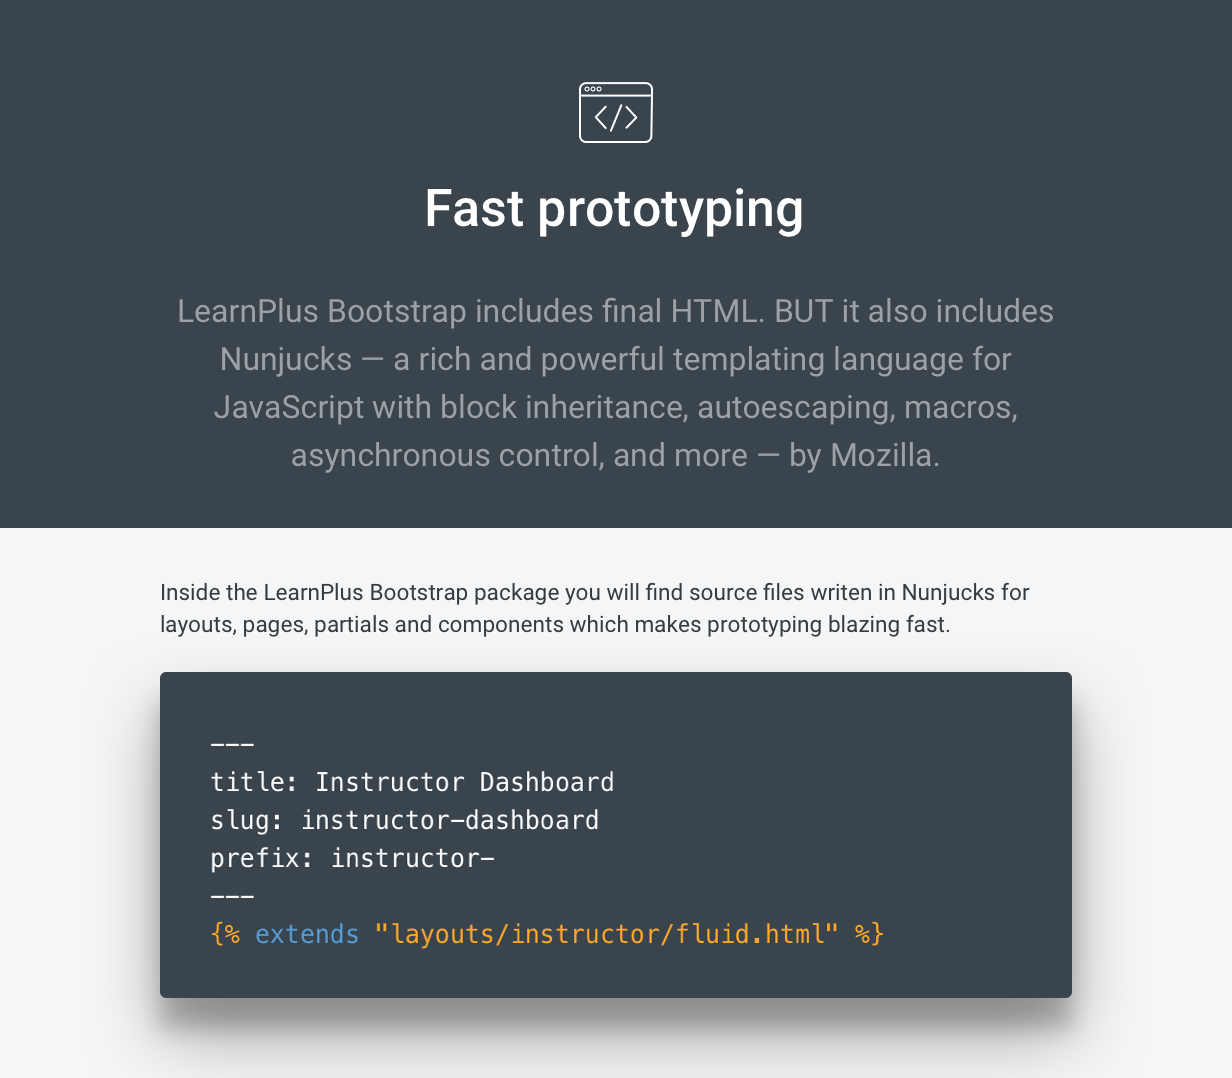 LearnPlus Bootstrap - LMS Dashboard Template - provides fast prototyping tools